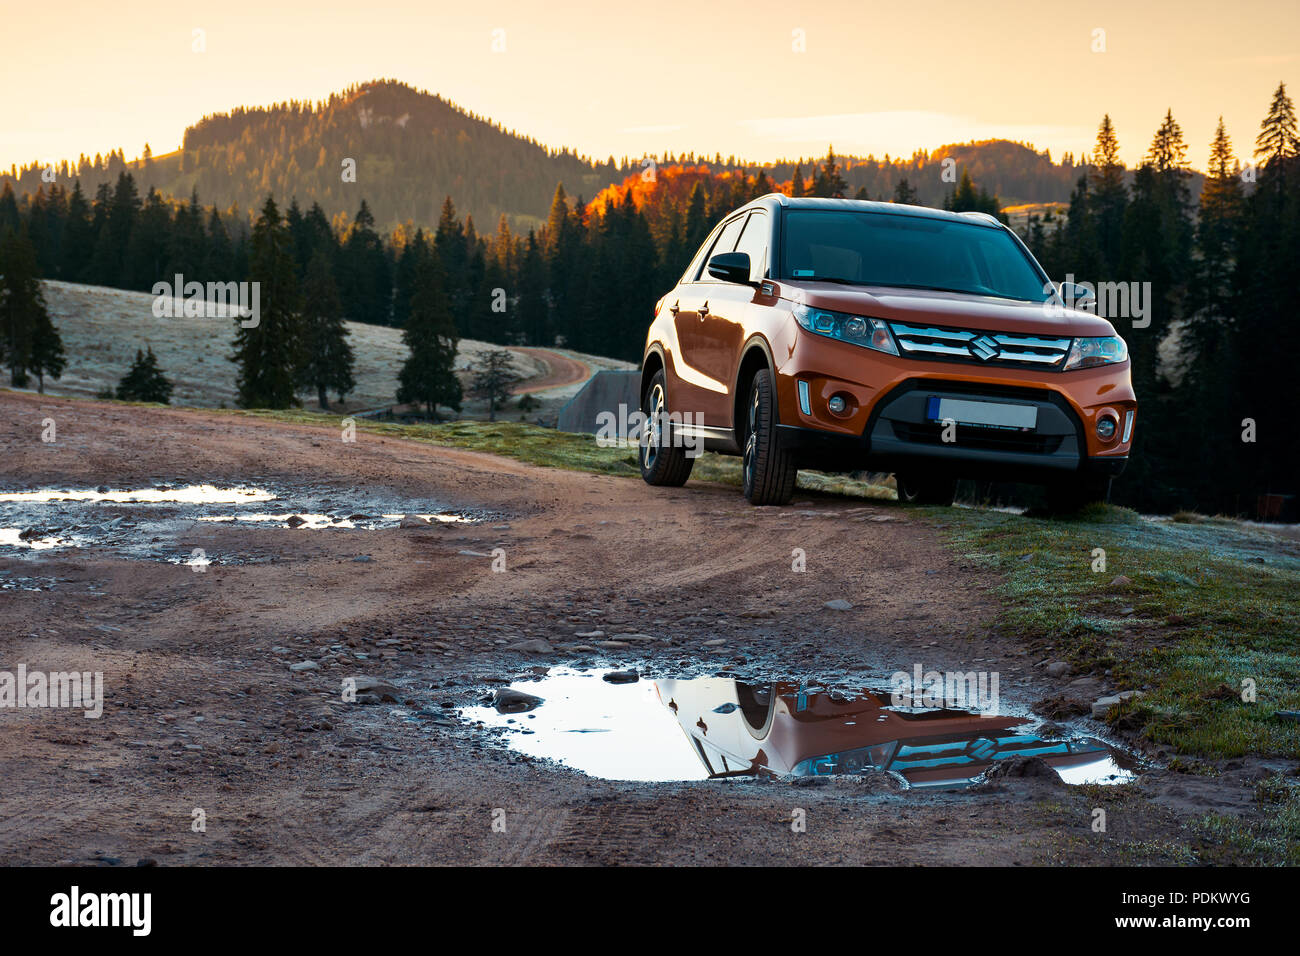 Apuseni, Romania - OCT 15, 2017: orange Suzuki Vitara SUV on a country road in mountains at sunrise. beautiful autumn landscape with spruce forest.tra - Stock Image